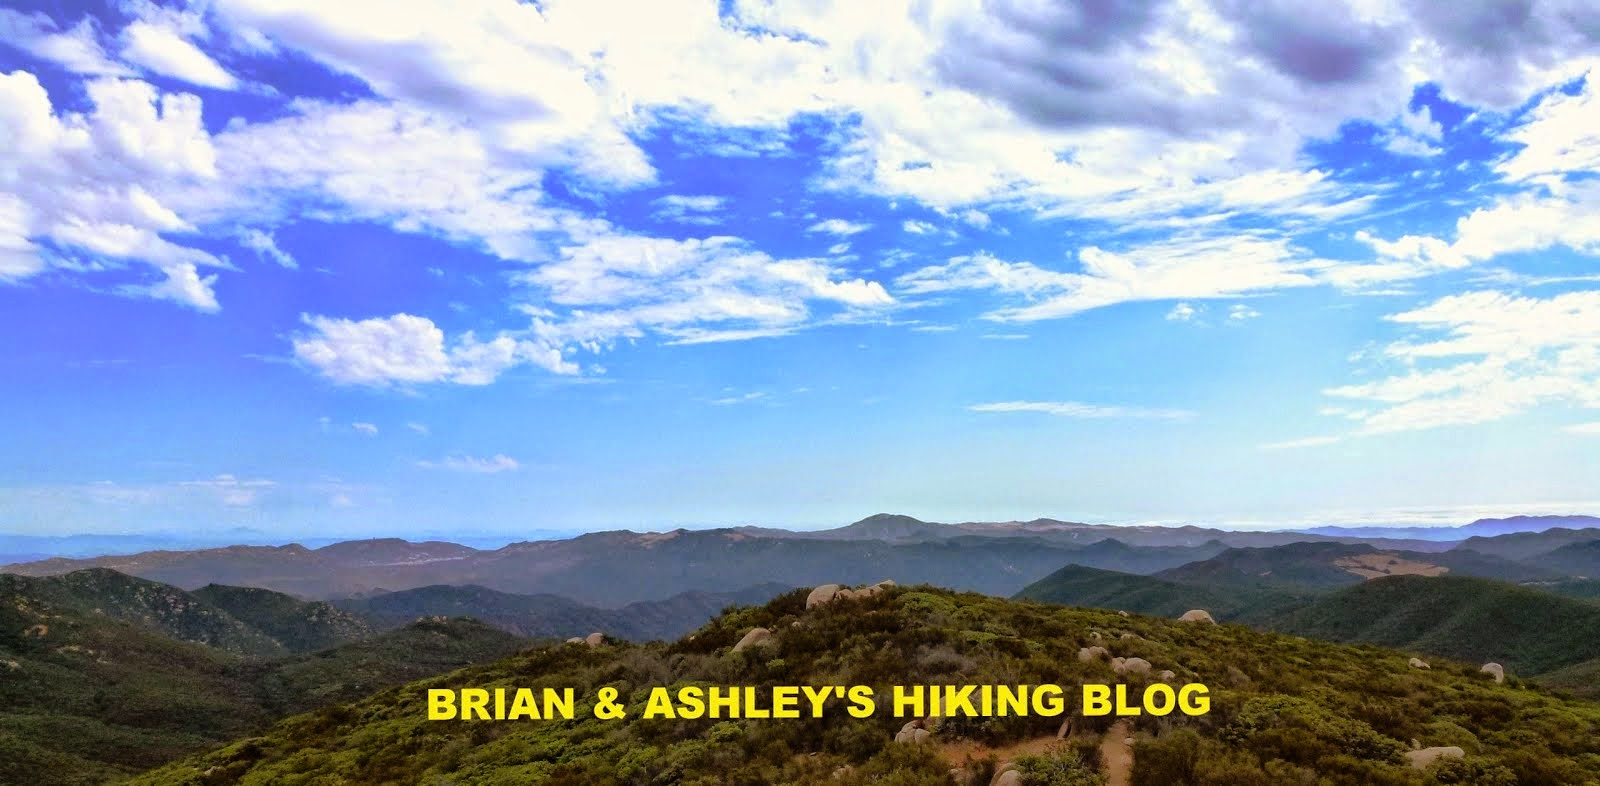 Brian and Ashley's Hiking Blog!